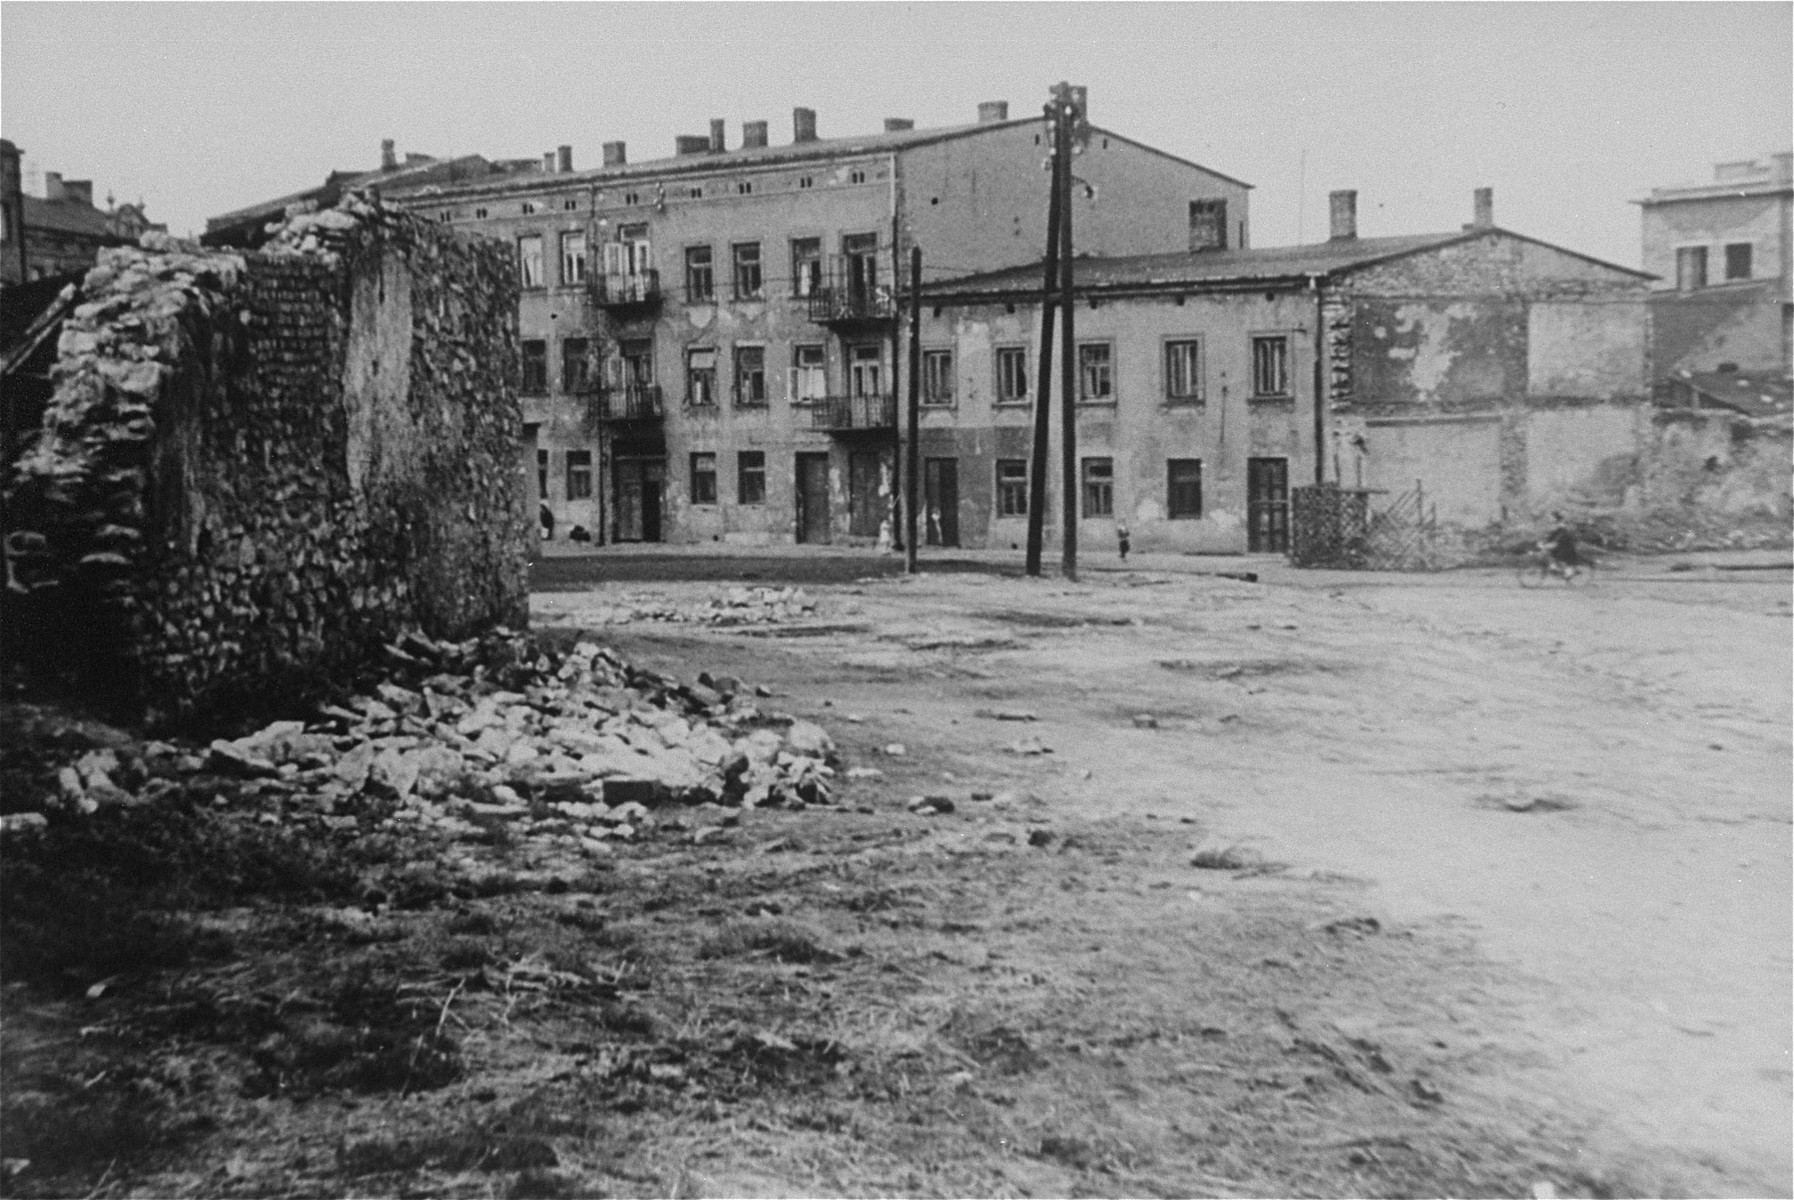 View of Rynek Warszawski Square in Czestochowa, where Jews in the ghetto were assembled for forced labor and deportation.